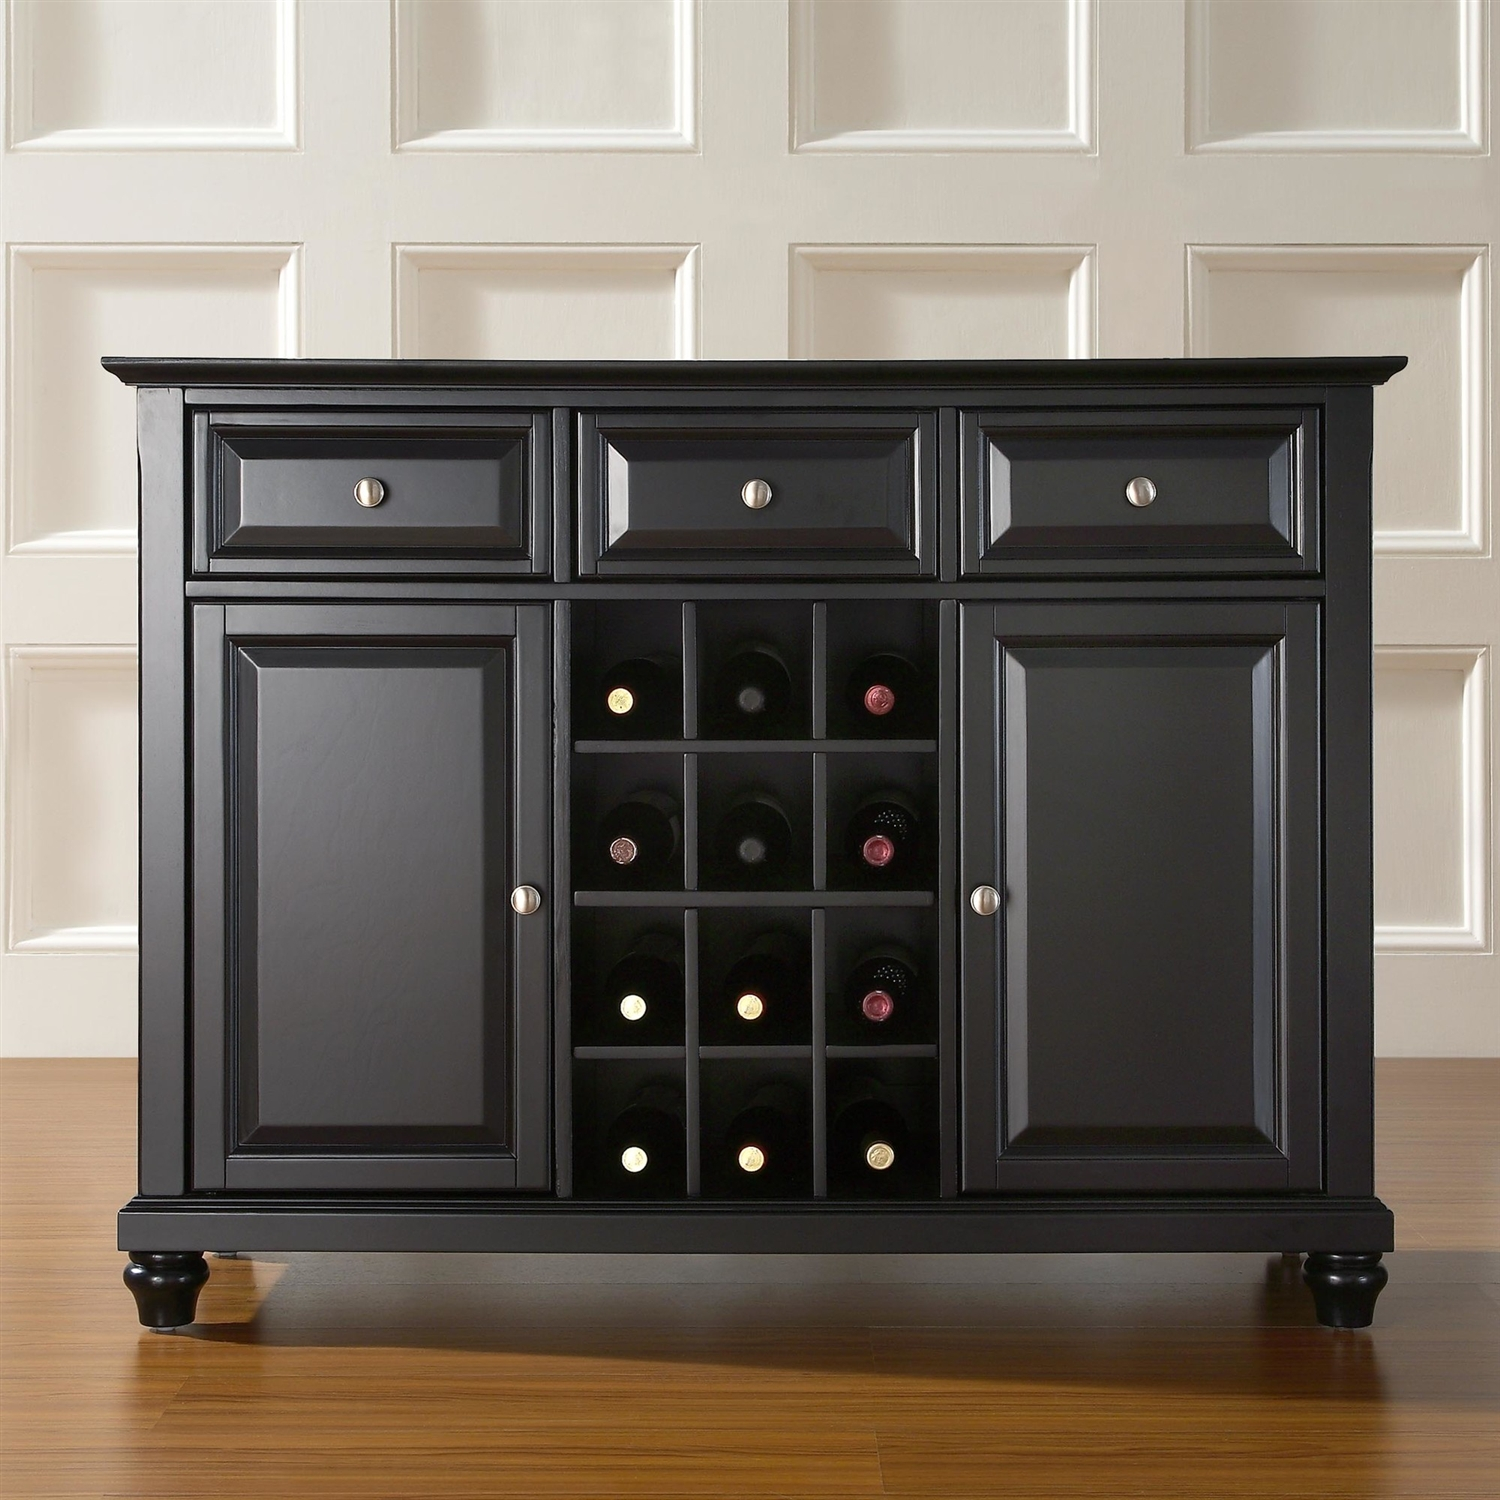 Contemporary Dining Room Sideboard Buffet Cabinet In Black Fastfurnishings